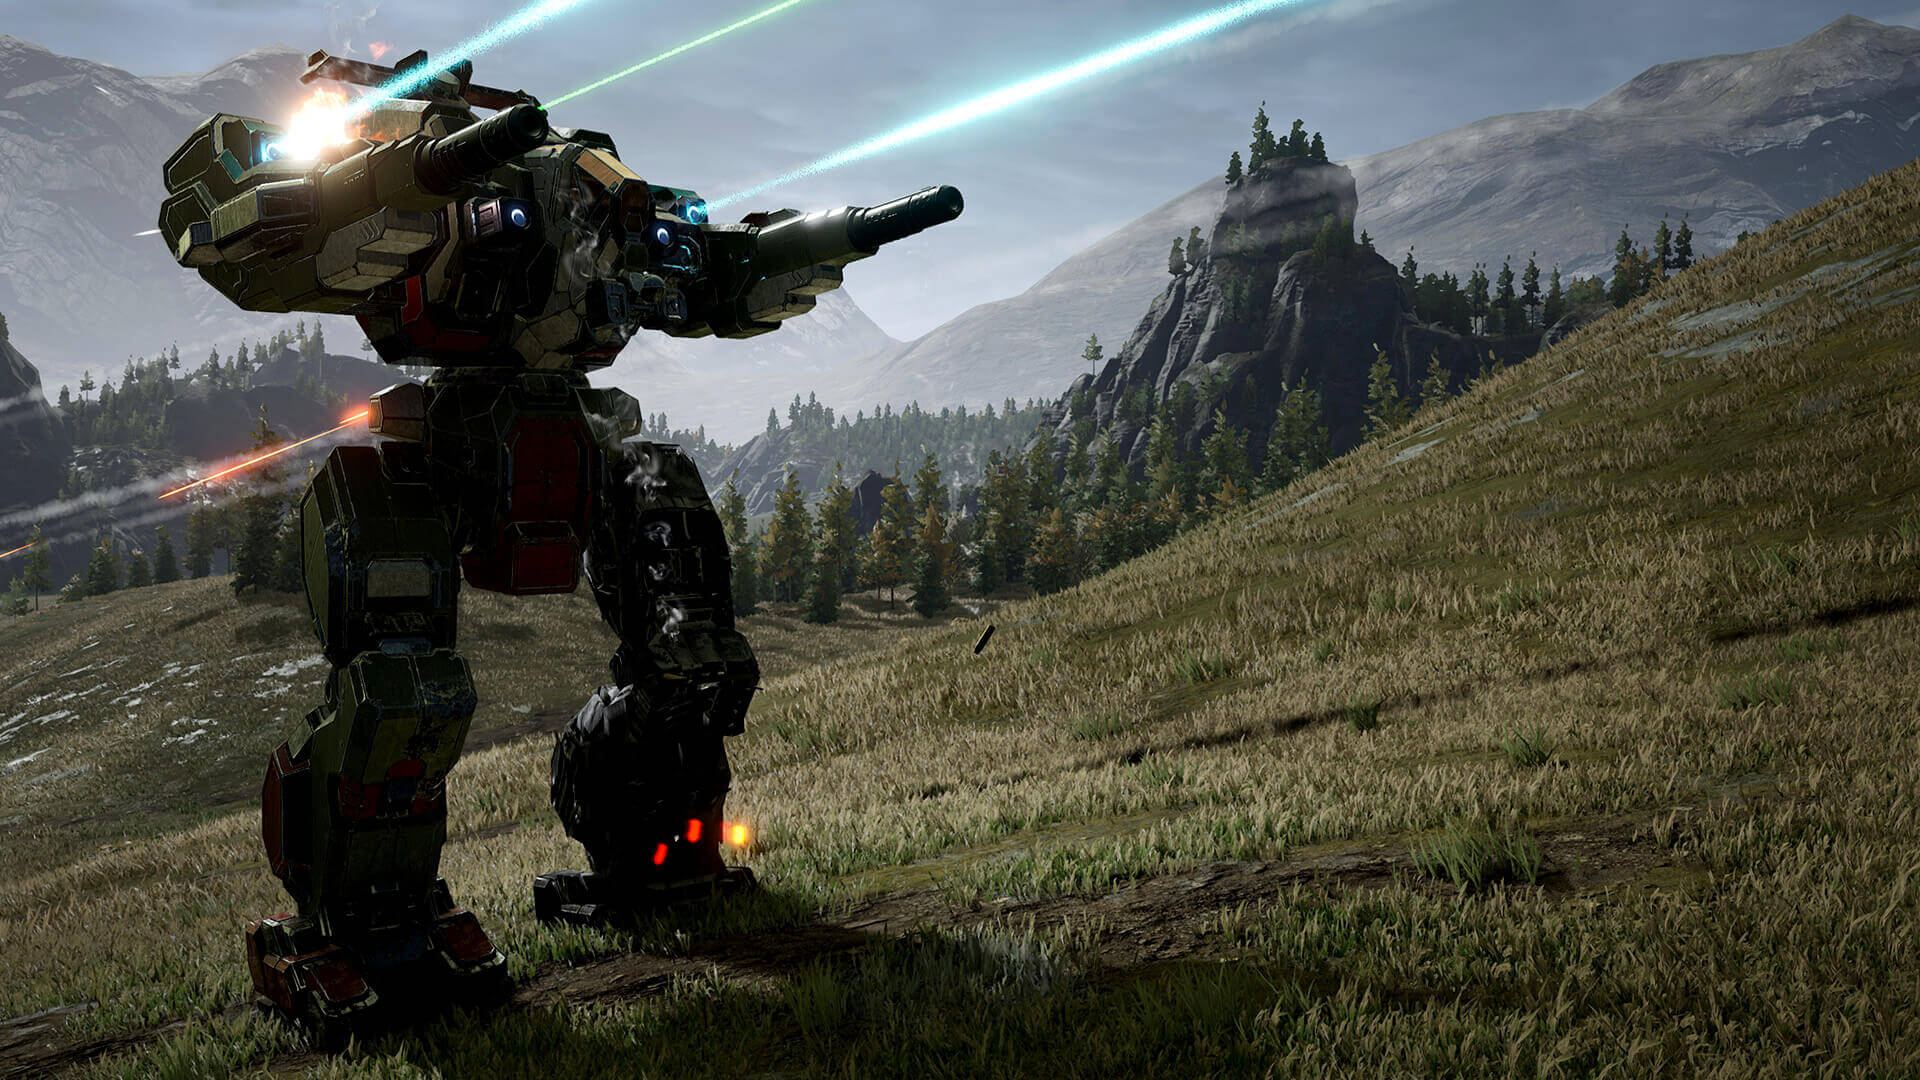 MechWarrior 5: Mercenaries, Piranha Games